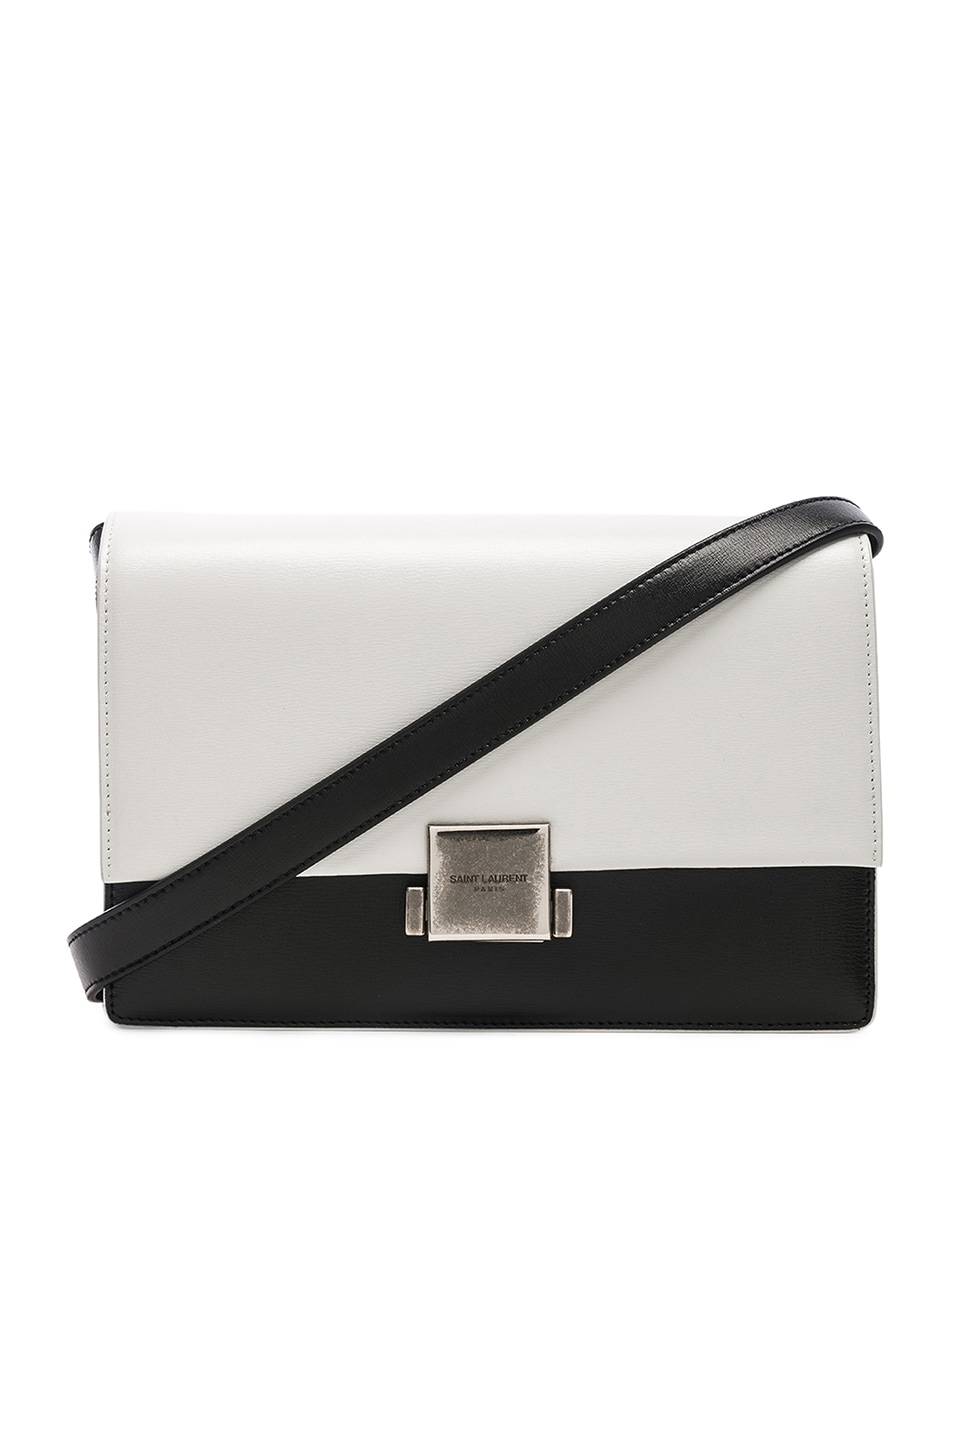 Medium Colorblock Leather Bellechasse Satchel in White Saint Laurent Free Shipping Geniue Stockist Cheap Sale Fake Buy Cheap Official Site Free Shipping Visit New RYjJa1BZTo